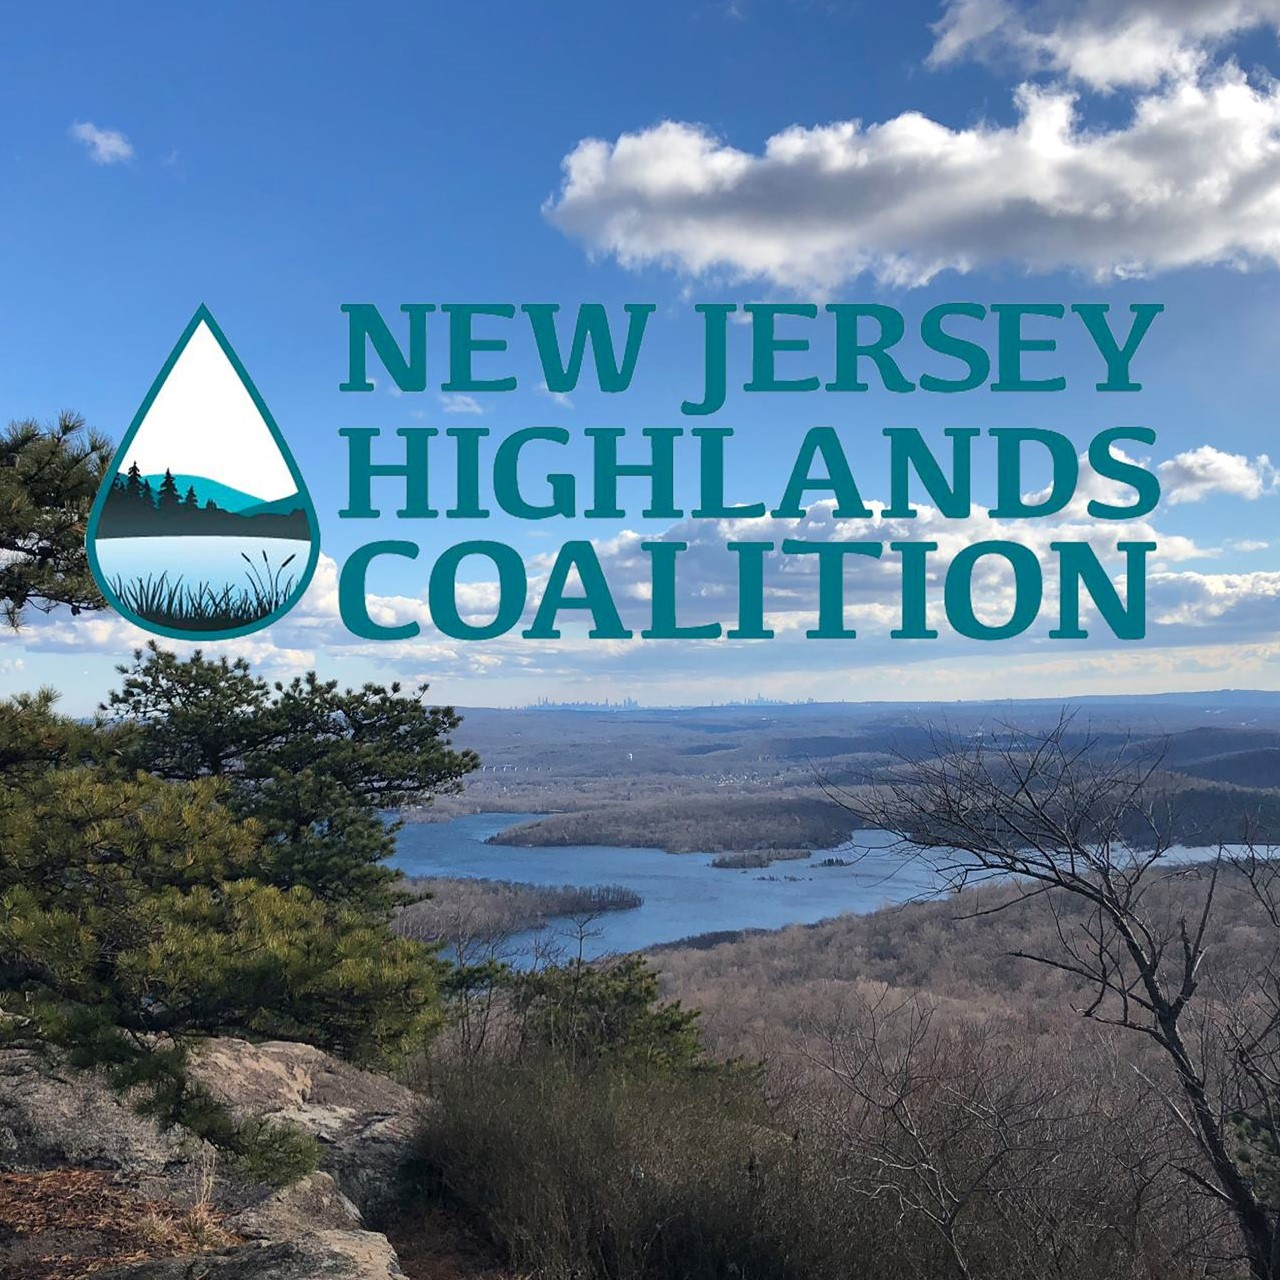 Marketspace Vendor Events is an Official Member Organization of the NJ Highlands Coalition - February 19, 2019 Boonton, NJ -- Marketspace Vendor Events is proud to announce becoming an organizational member of the New Jersey Highlands Coalition. The donation given in advance of the 3rd Hopped Up Highlands Hackettstown Scavenger Hunt Pub Crawl will help promote the cultural and natural resources, especially the vital water of the New Jersey Highlands. Please consider joining and/or donating to this important cause.